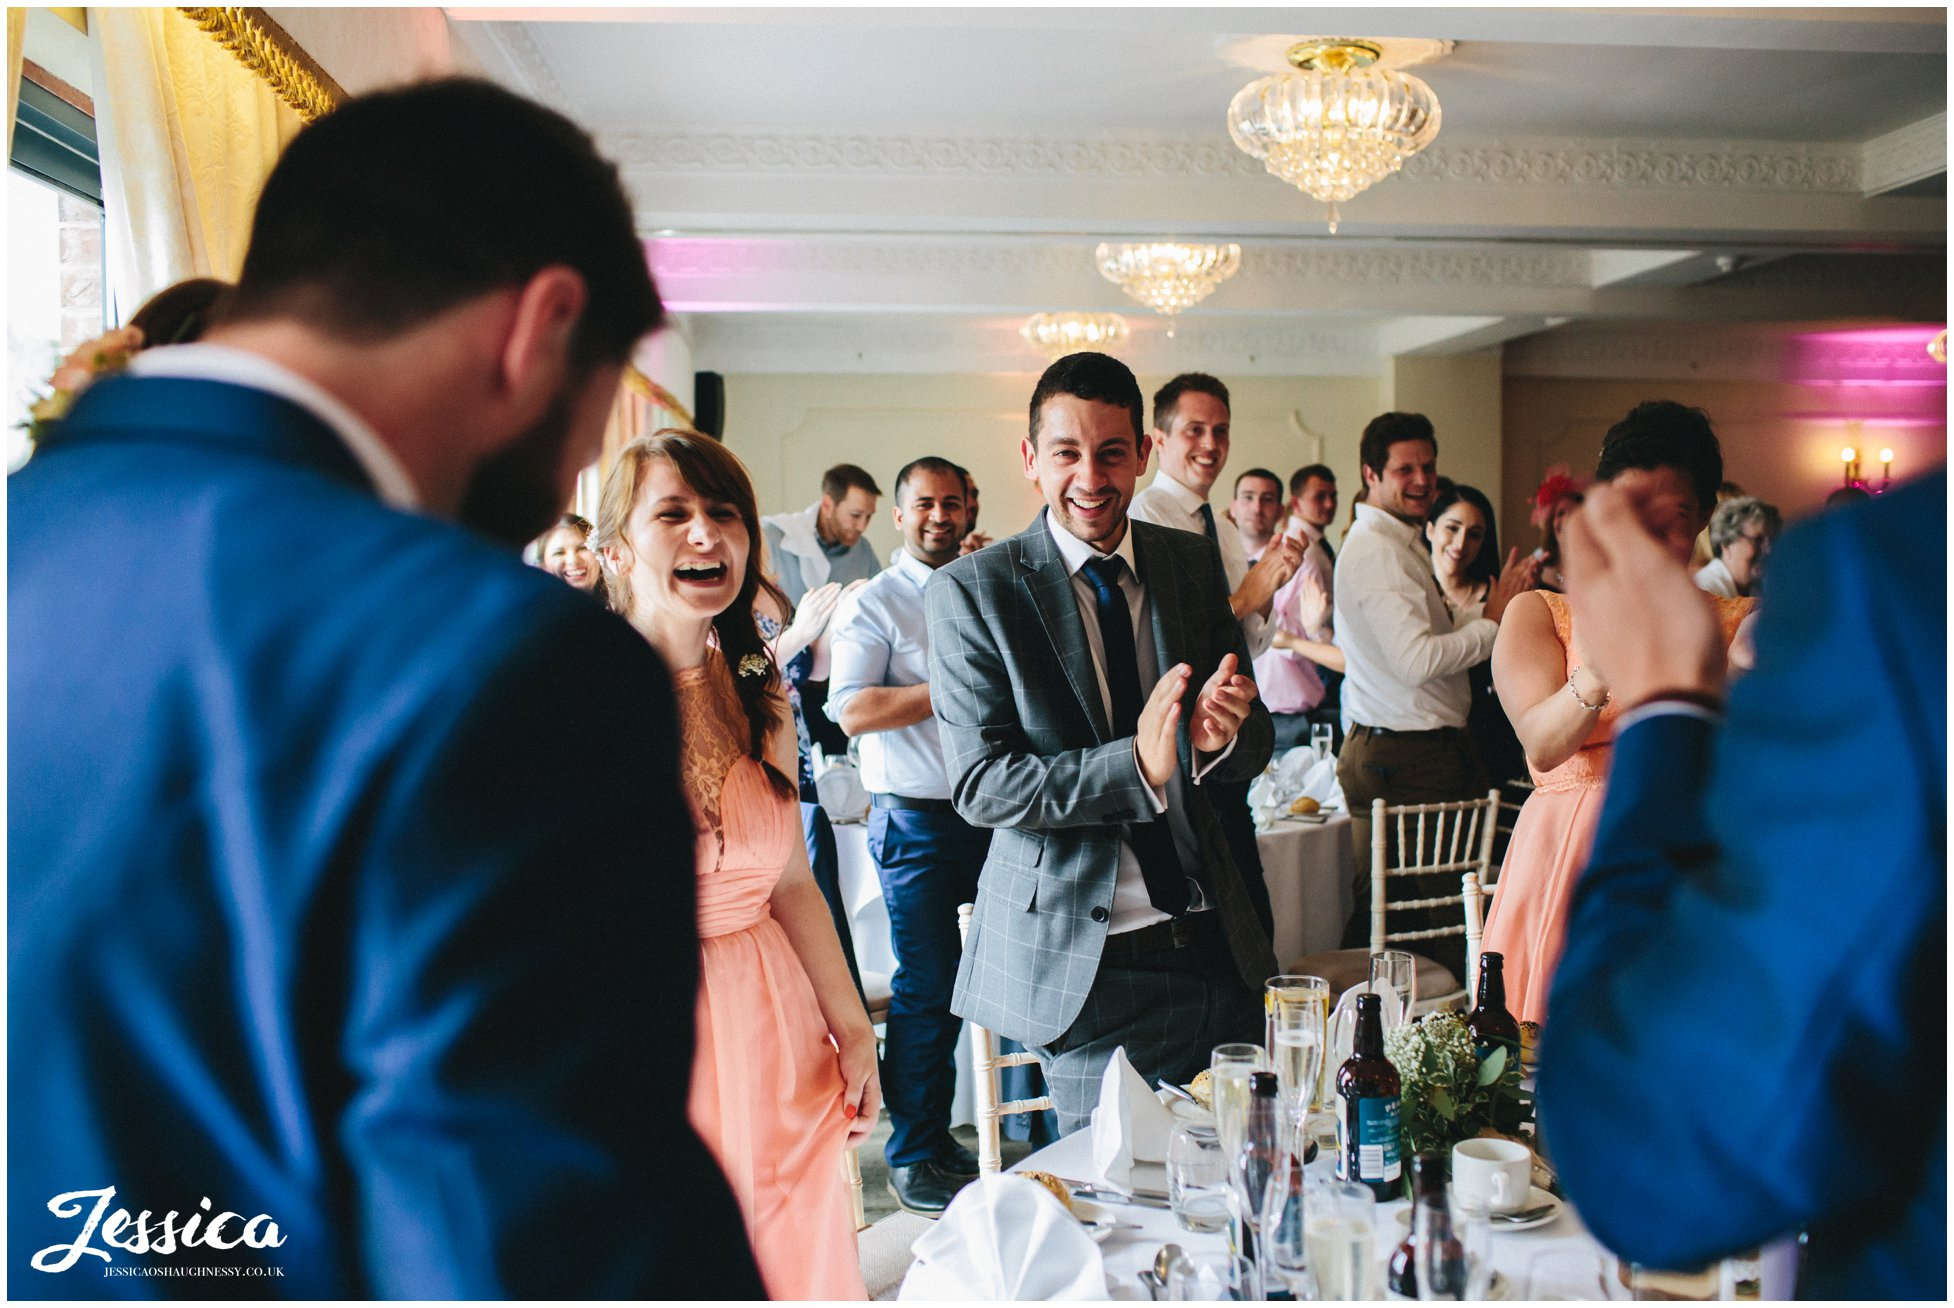 friends and family clap as newly weds enter